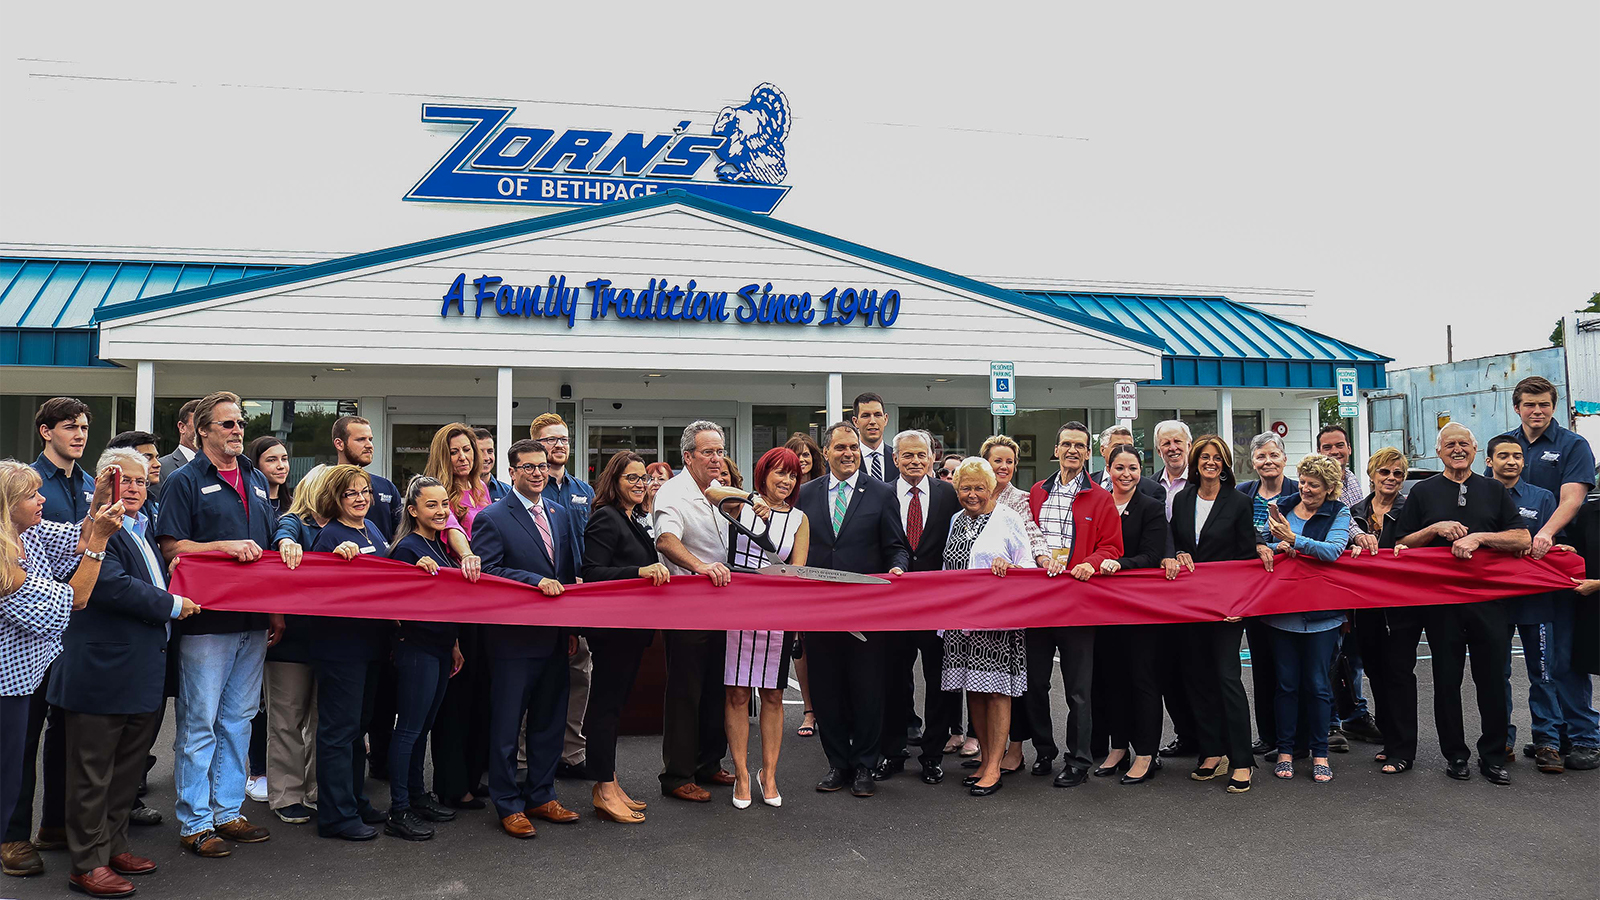 Zorn's of Bethpage celebrates expansion to larger space